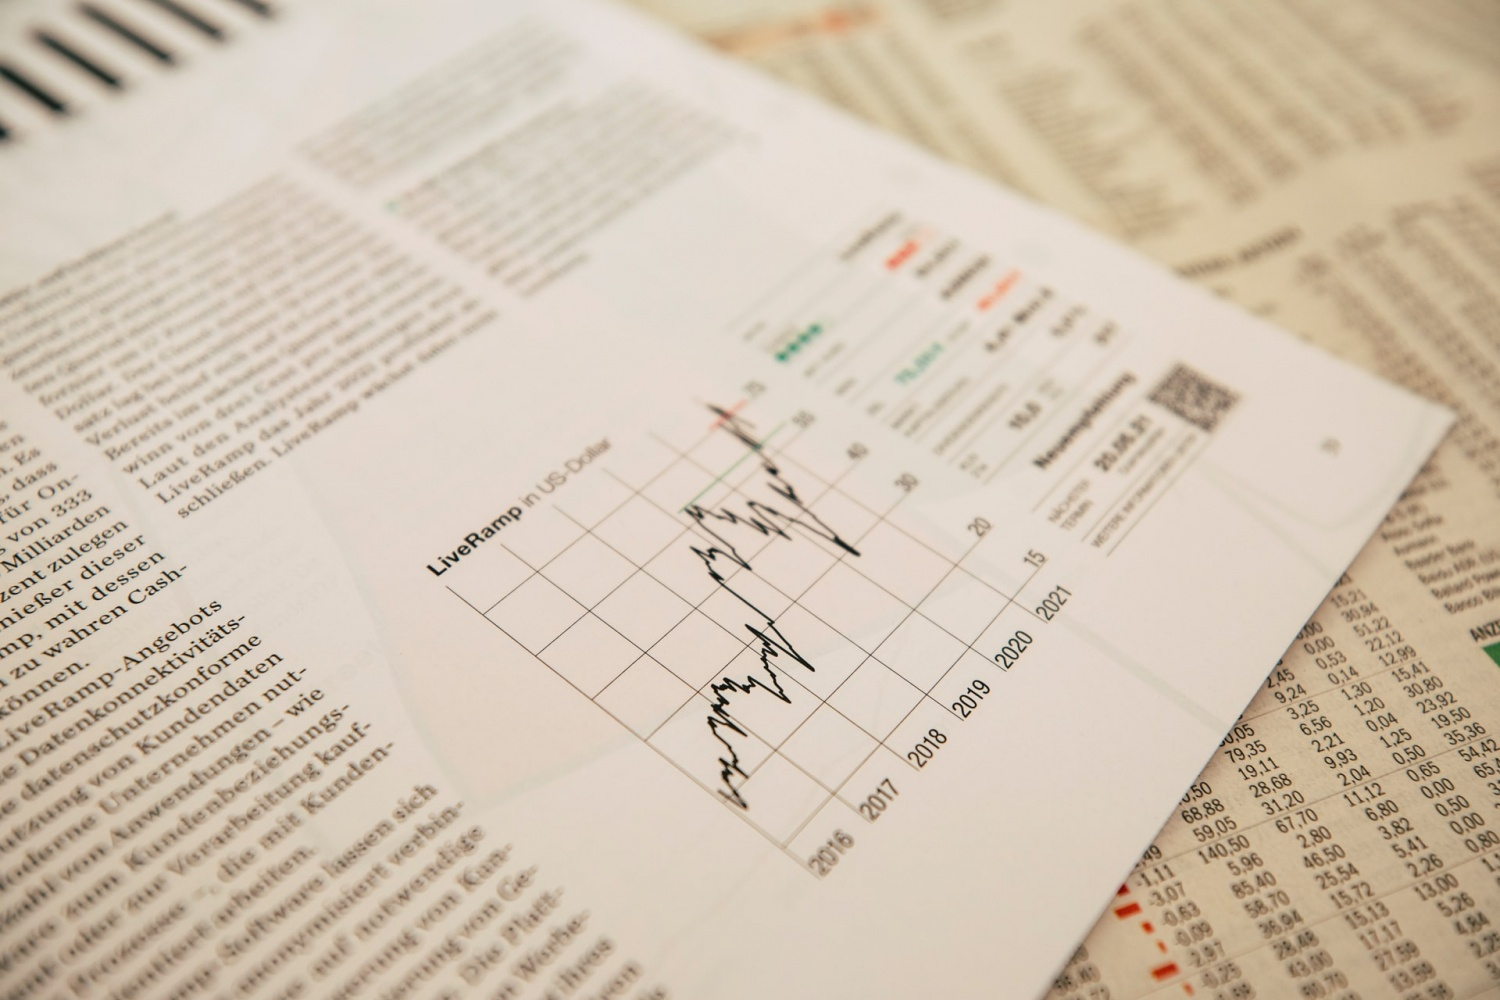 Investment outcomes from the Dow Jones Commodity Index models